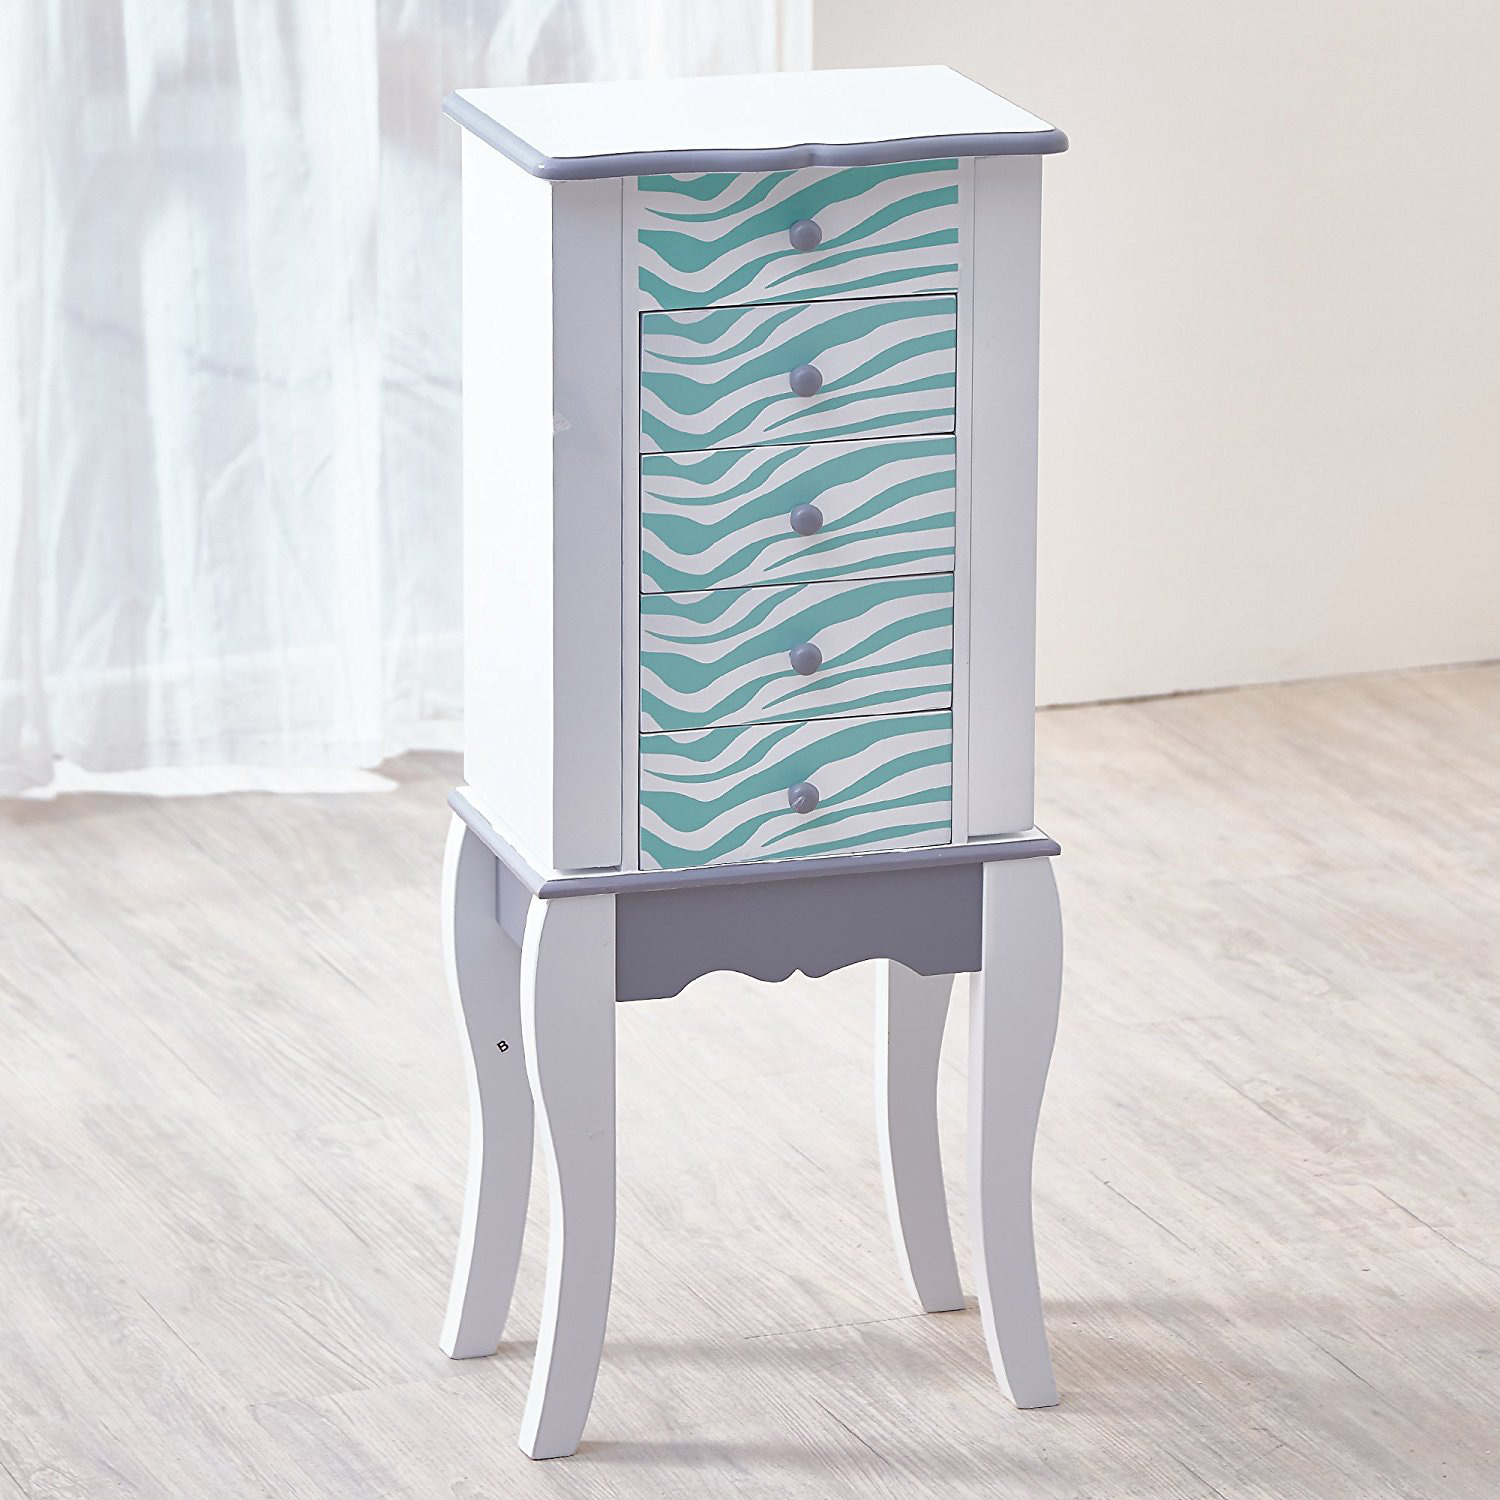 Cute Small White Floor Standing Jewelry Armoire